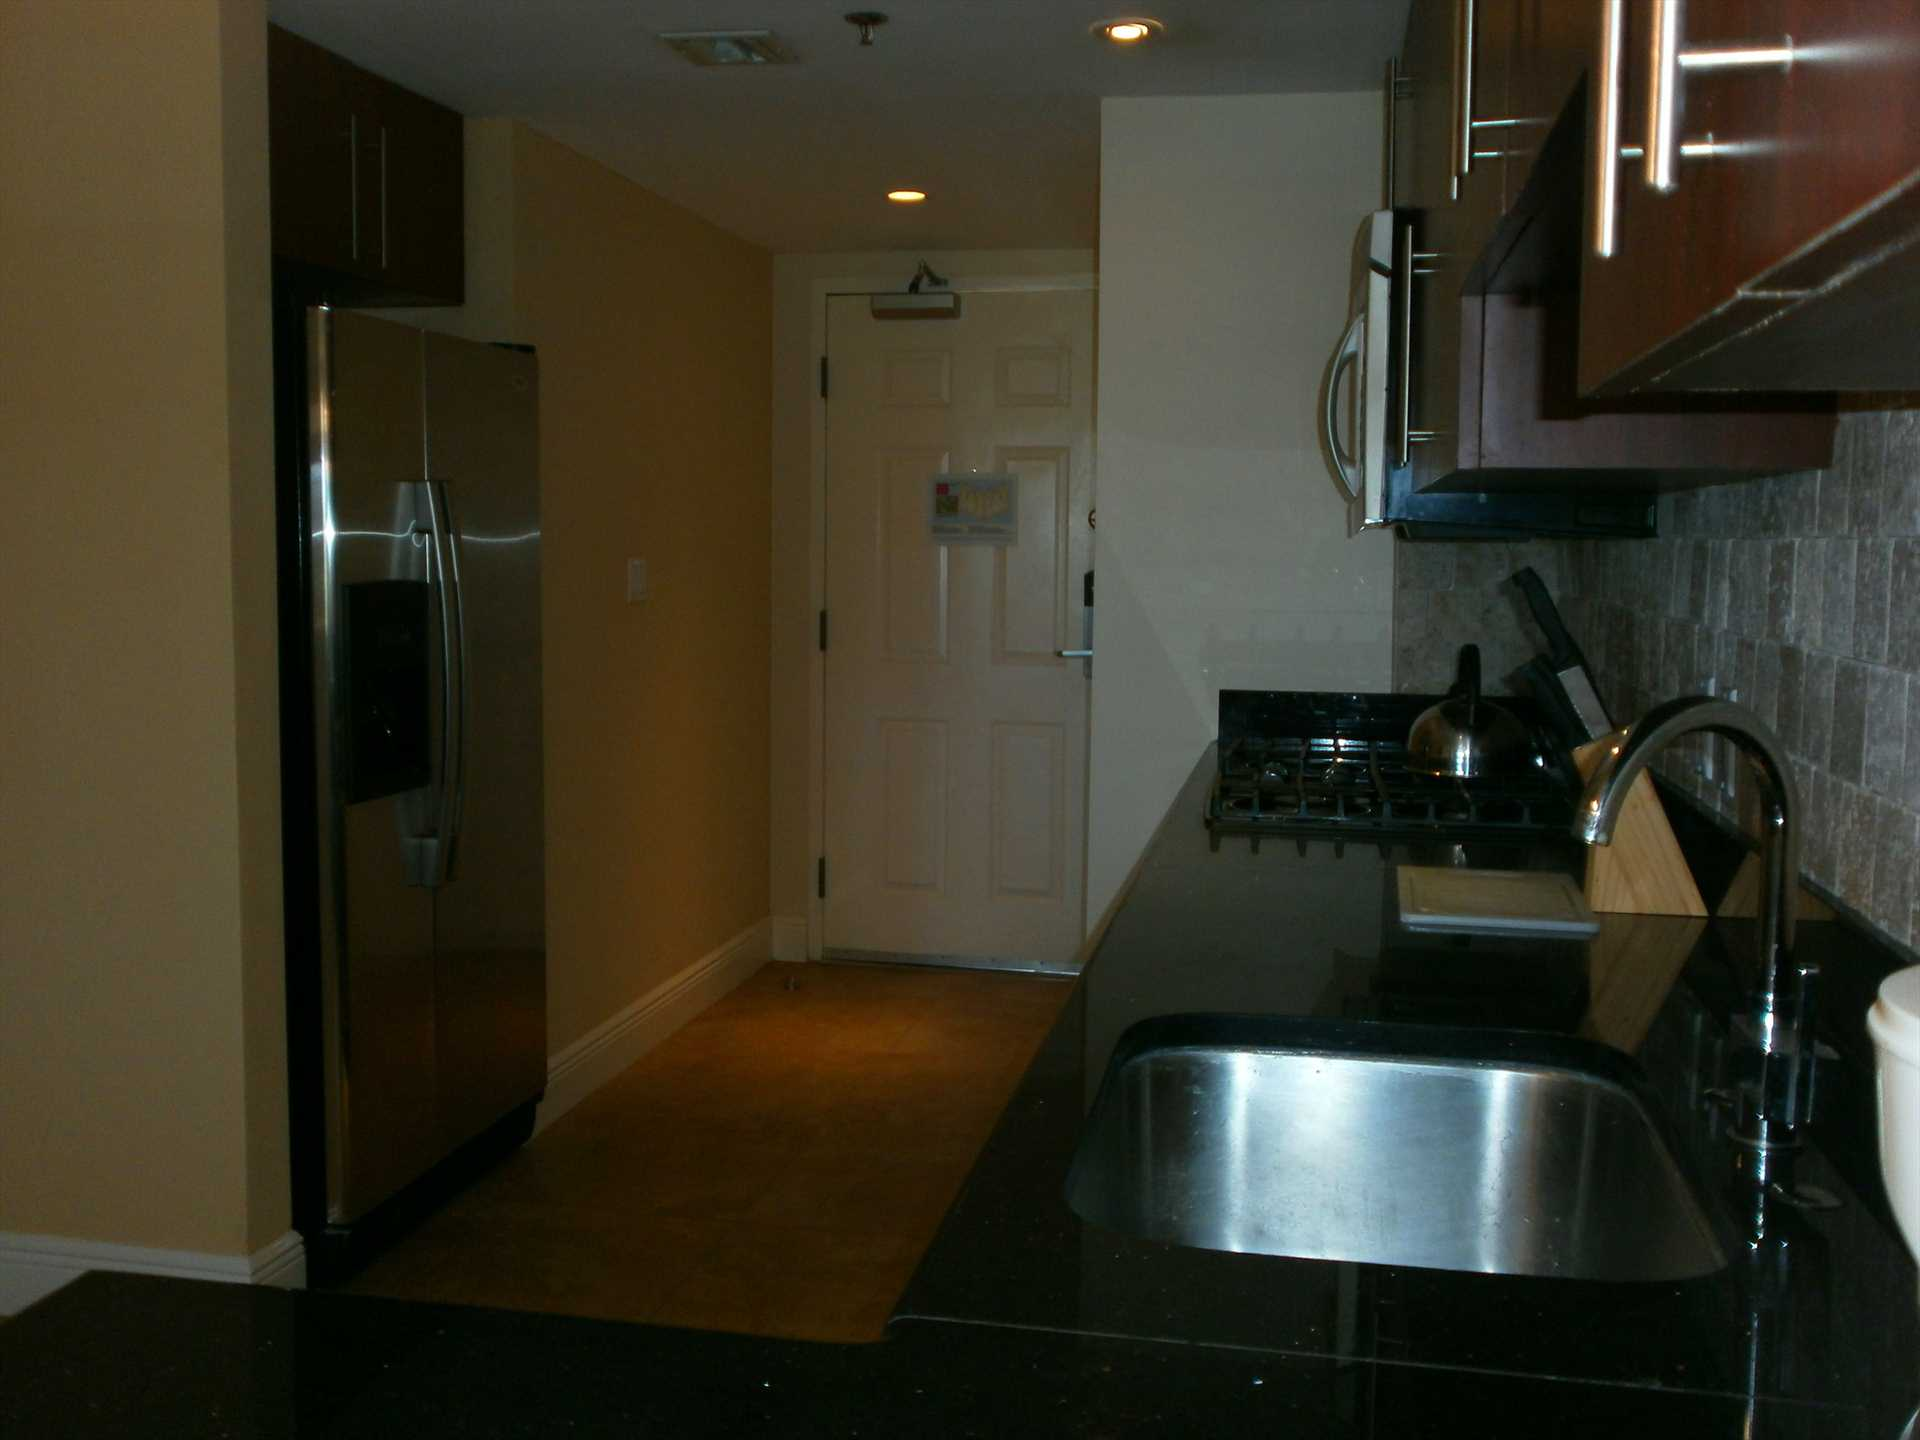 Fully-sized kitchen with refrigerator and ice maker.